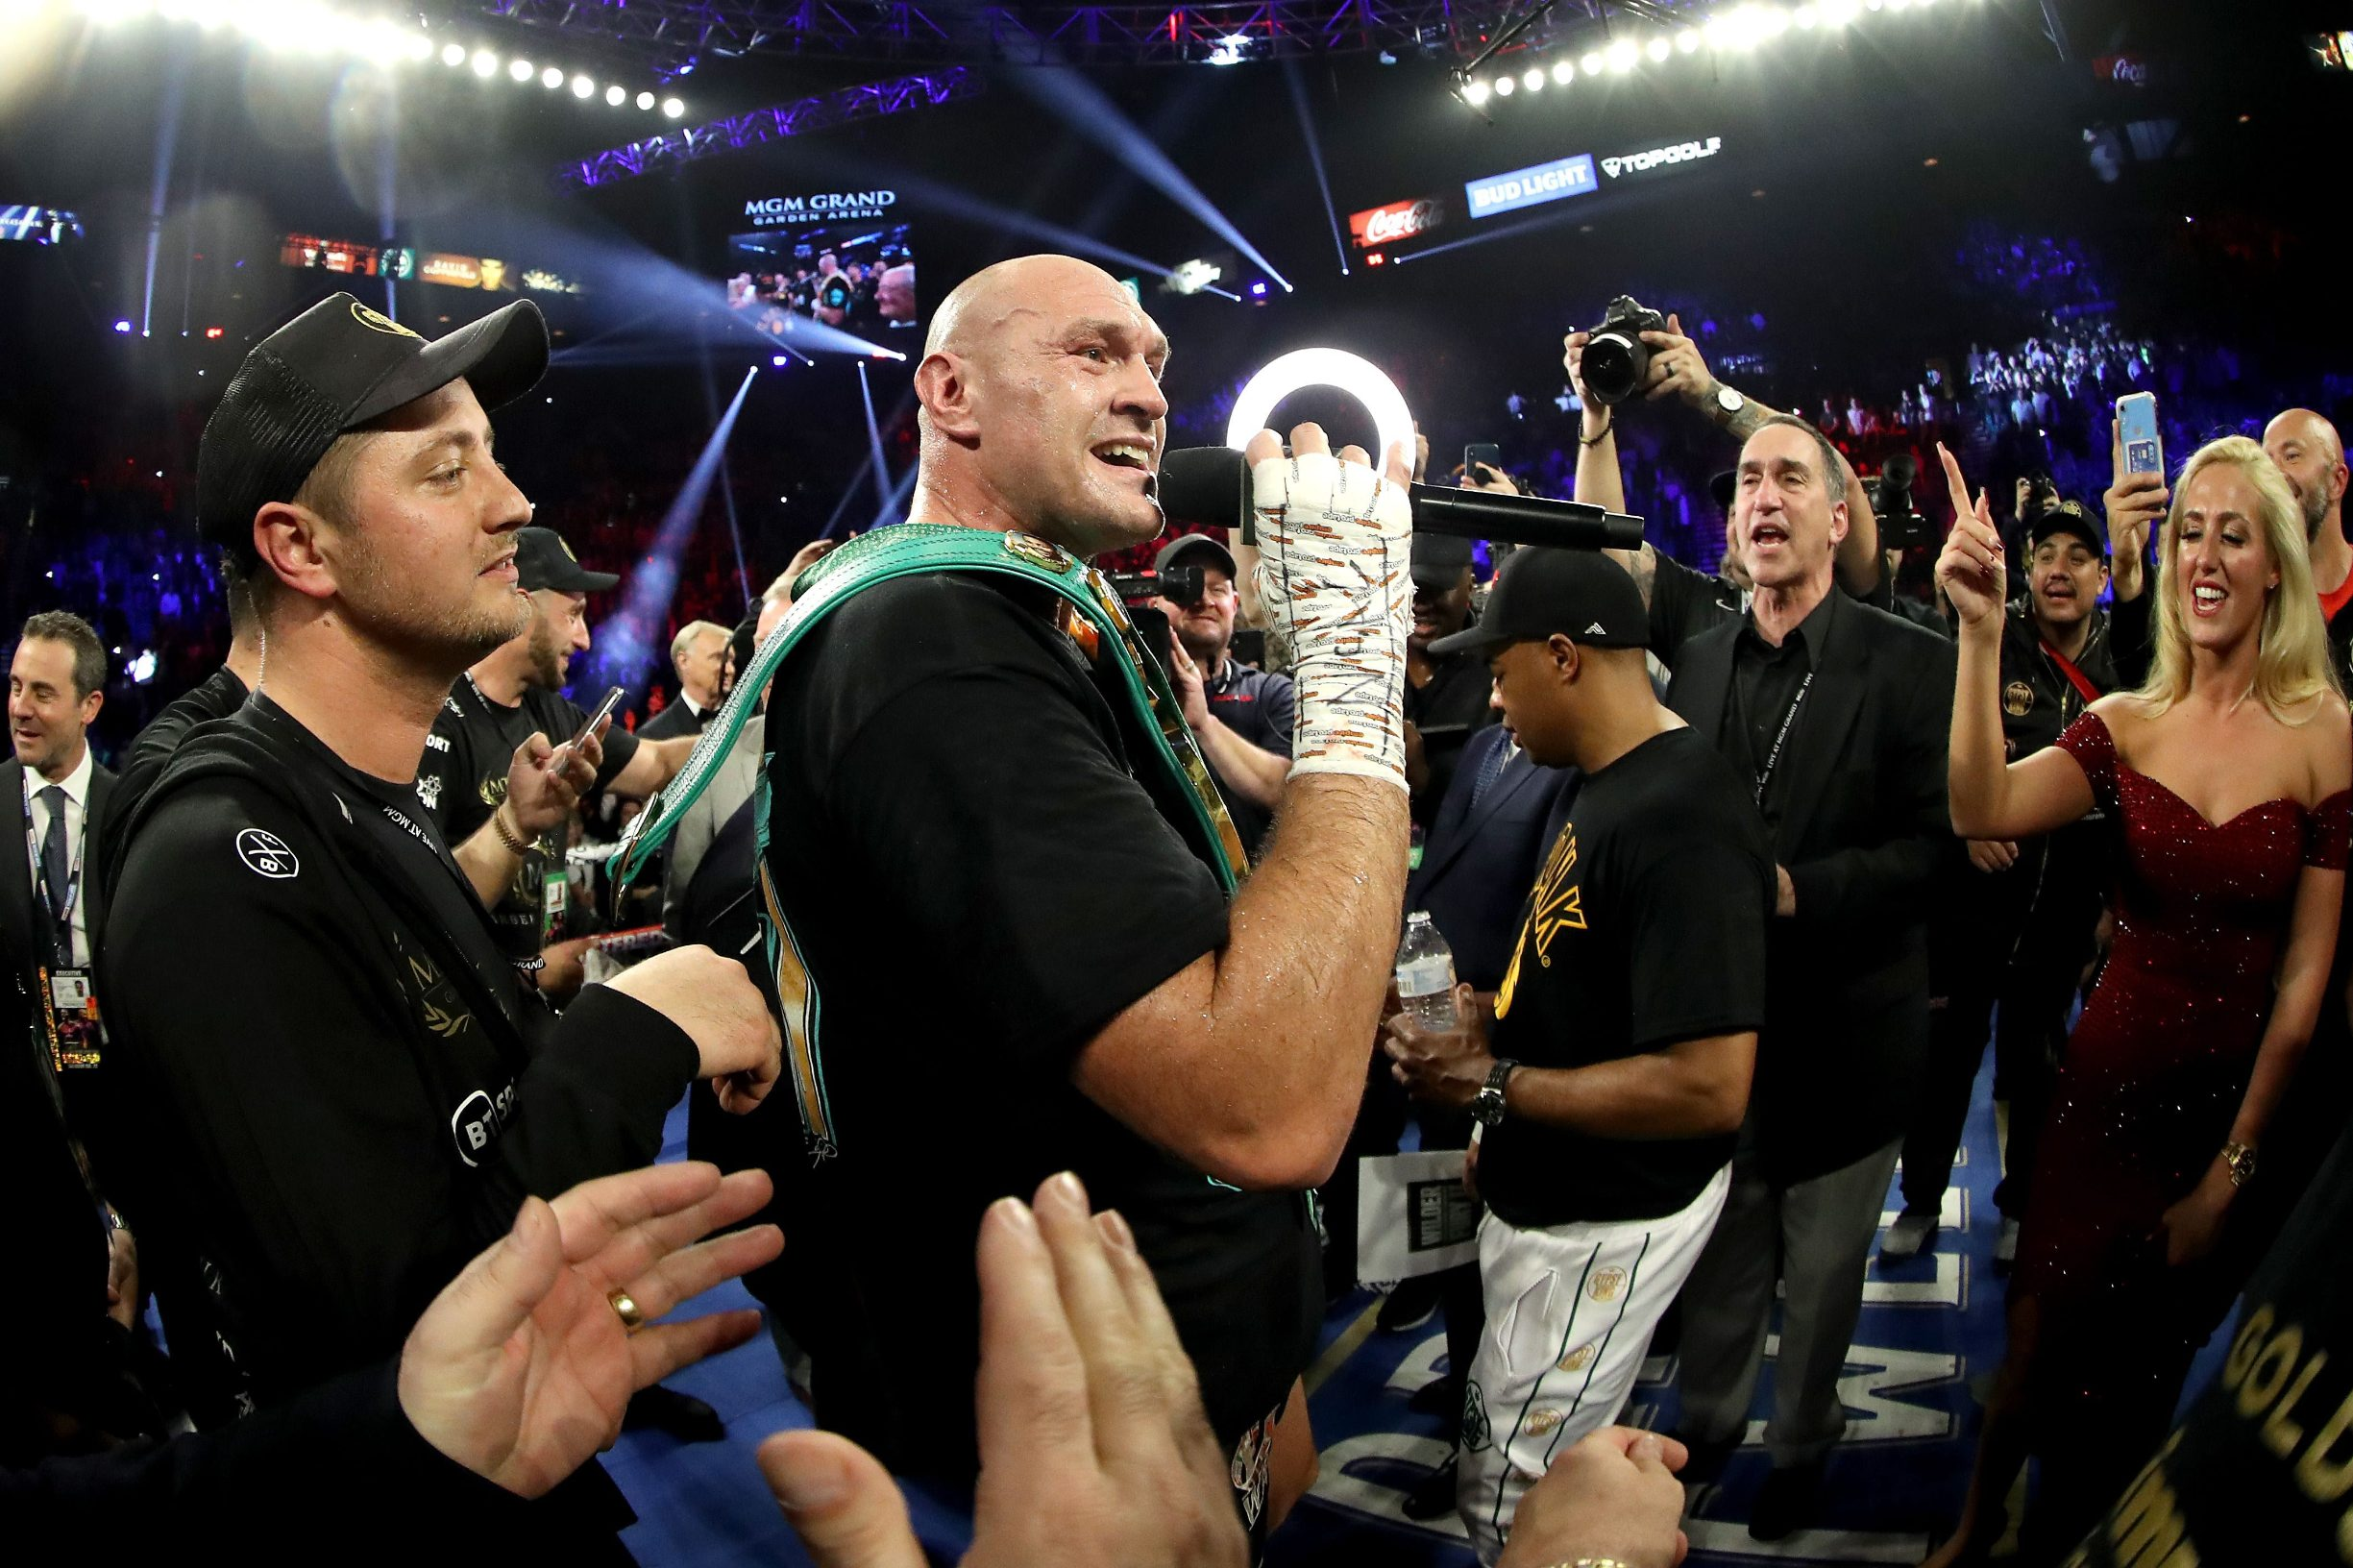 LAS VEGAS, NEVADA - FEBRUARY 22: Tyson Fury sings to his wife Paris Fury and the fans following his win by TKO in the seventh round against Deontay Wilder in the Heavyweight bout for Wilder's WBC and Fury's lineal heavyweight title on February 22, 2020 at MGM Grand Garden Arena in Las Vegas, Nevada.   Al Bello/Getty Images/AFP == FOR NEWSPAPERS, INTERNET, TELCOS & TELEVISION USE ONLY ==